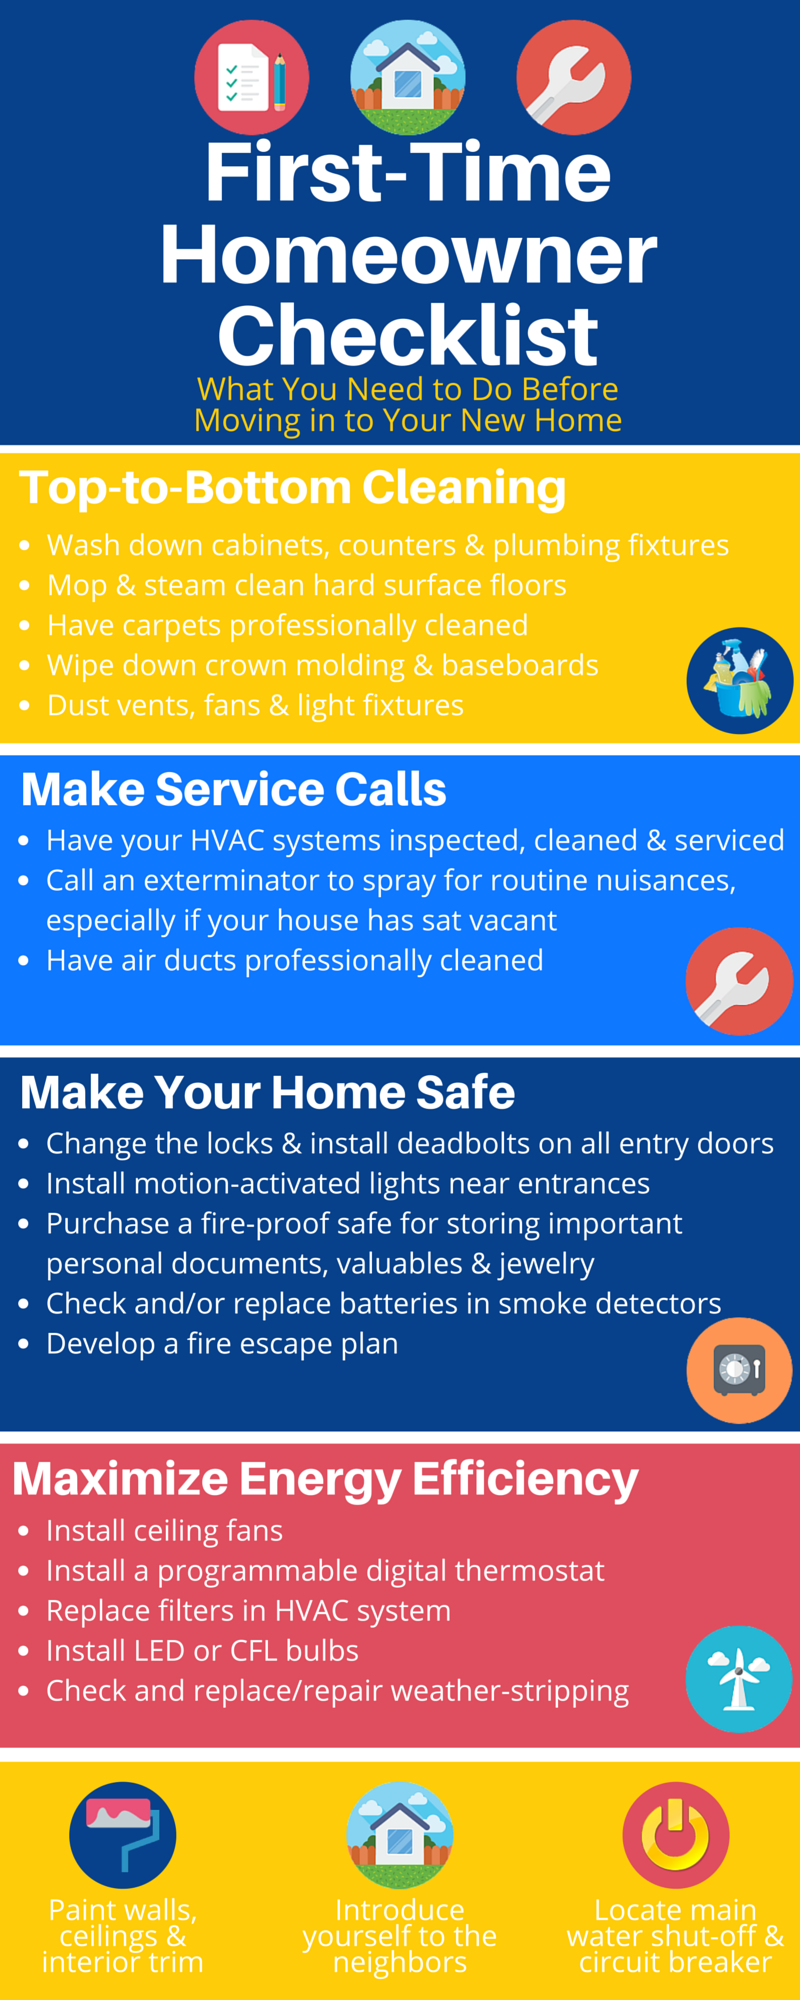 First Time Homeowner Checklist What You Need To Do Before Moving In Homeowner Checklist New Home Checklist Home Buying,Furnishing A New Home